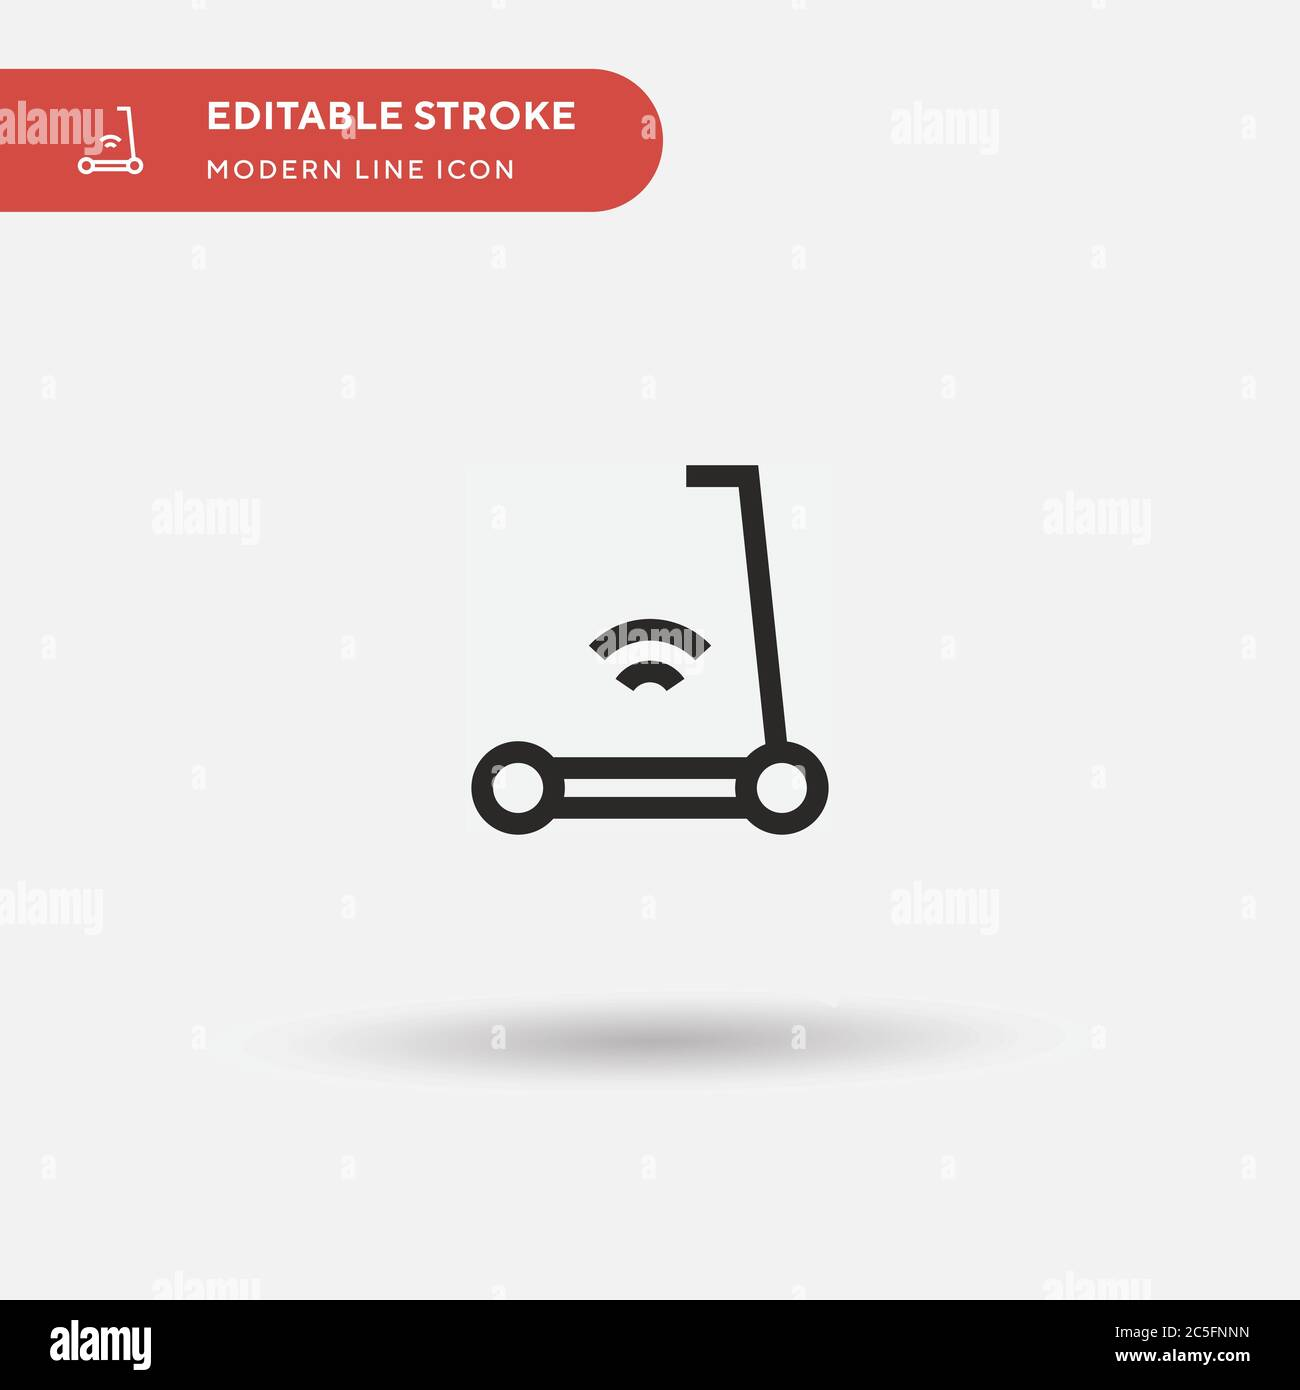 electric scooter simple vector icon illustration symbol design template for web mobile ui element perfect color modern pictogram on editable stroke electric scooter icons for your business project stock vector image https www alamy com electric scooter simple vector icon illustration symbol design template for web mobile ui element perfect color modern pictogram on editable stroke electric scooter icons for your business project image364837361 html